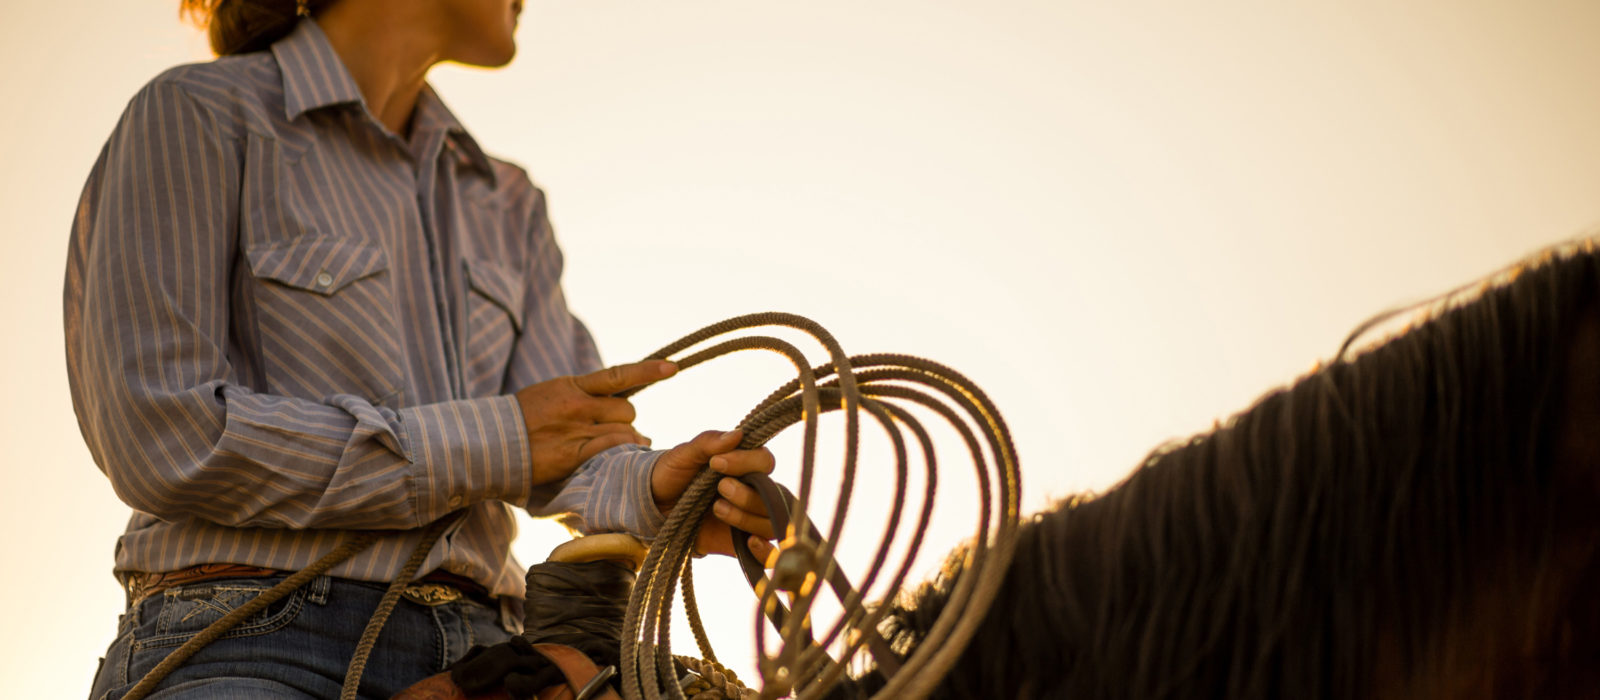 Female cattle rancher on horseback with lasso